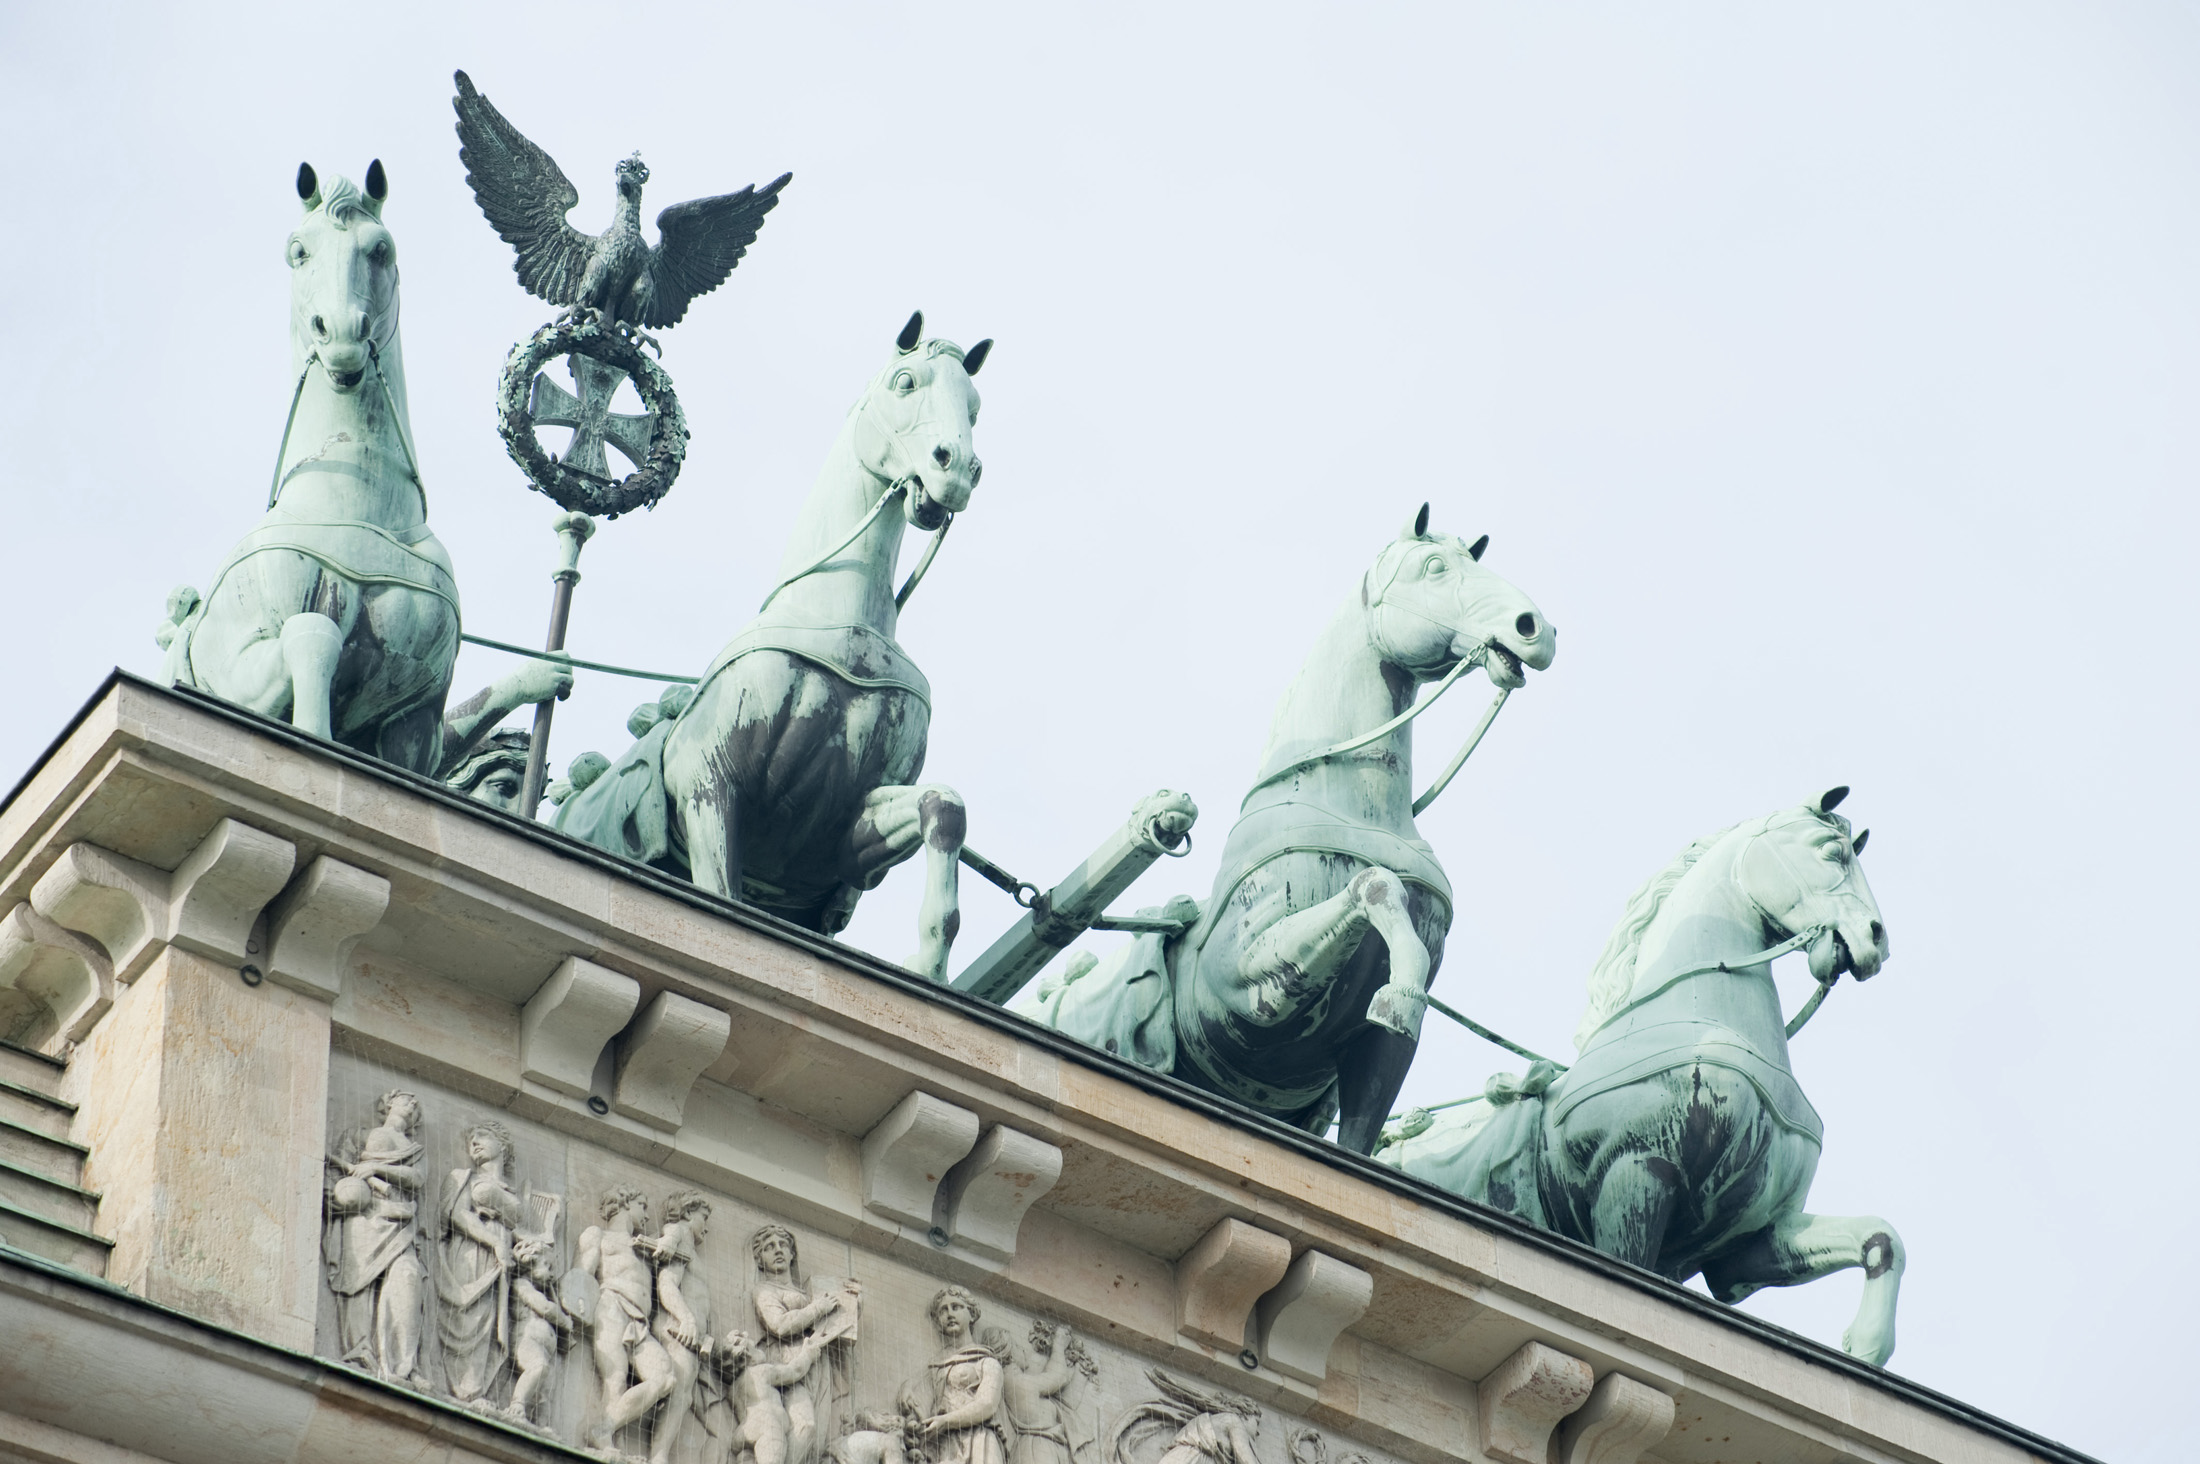 chariot drawn by four horses driven by Victoria, the Roman goddess of victory on top of the Brandenburg gate. Berlin Germany